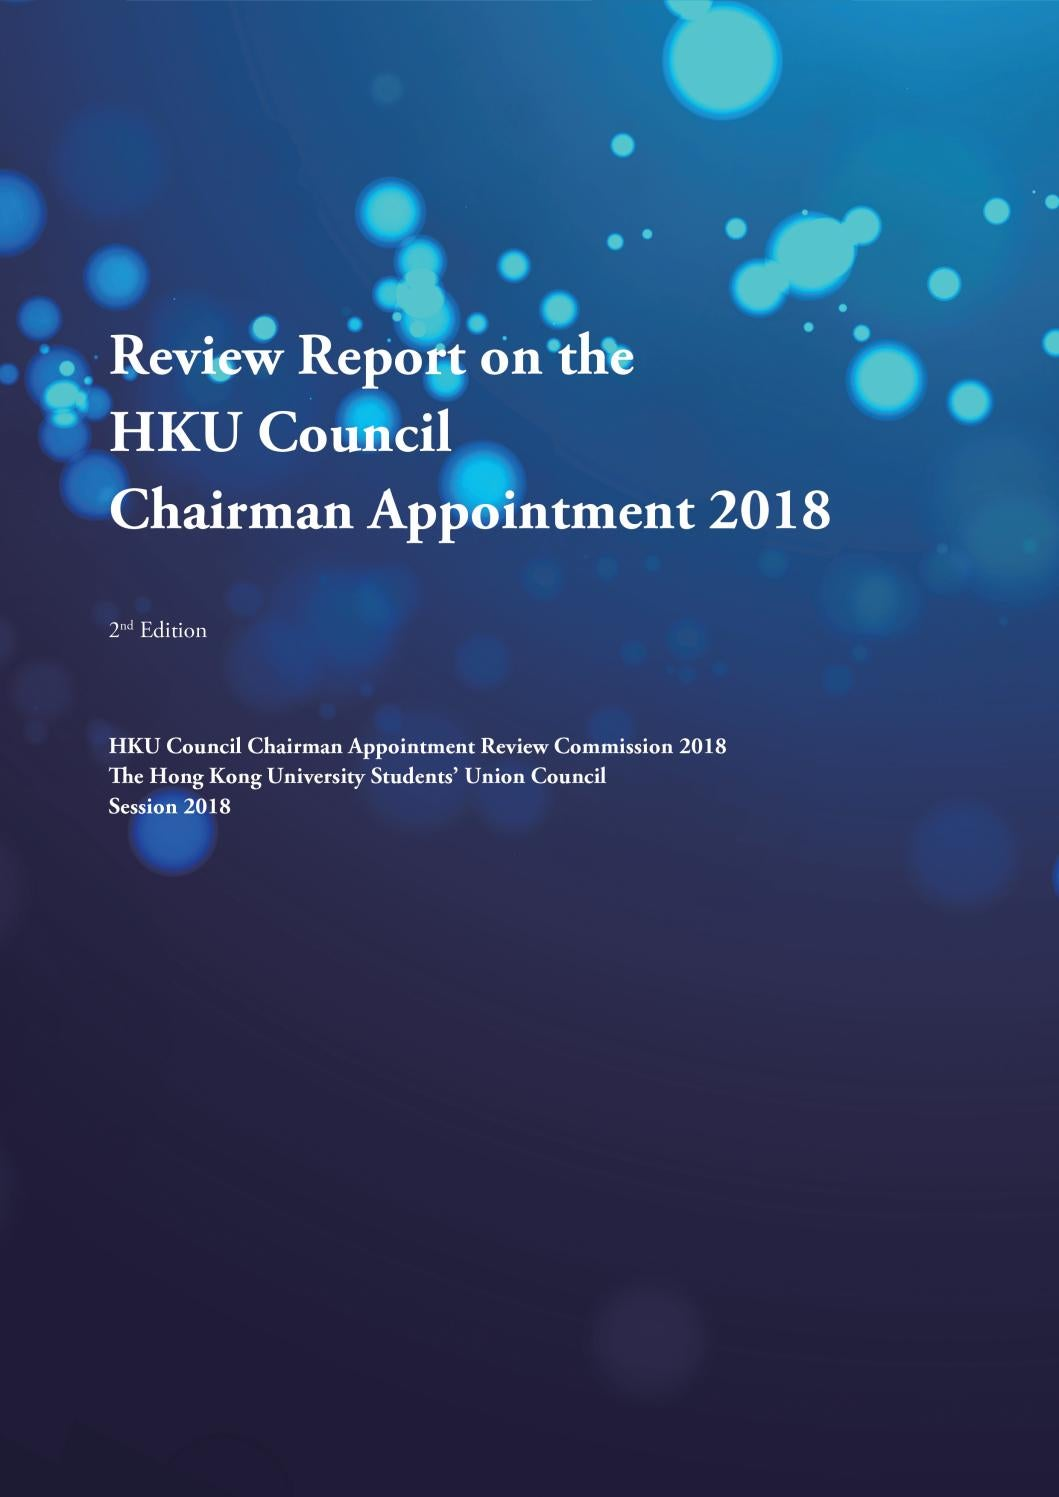 Review Report on the HKU Council Chairman Appointment 2018